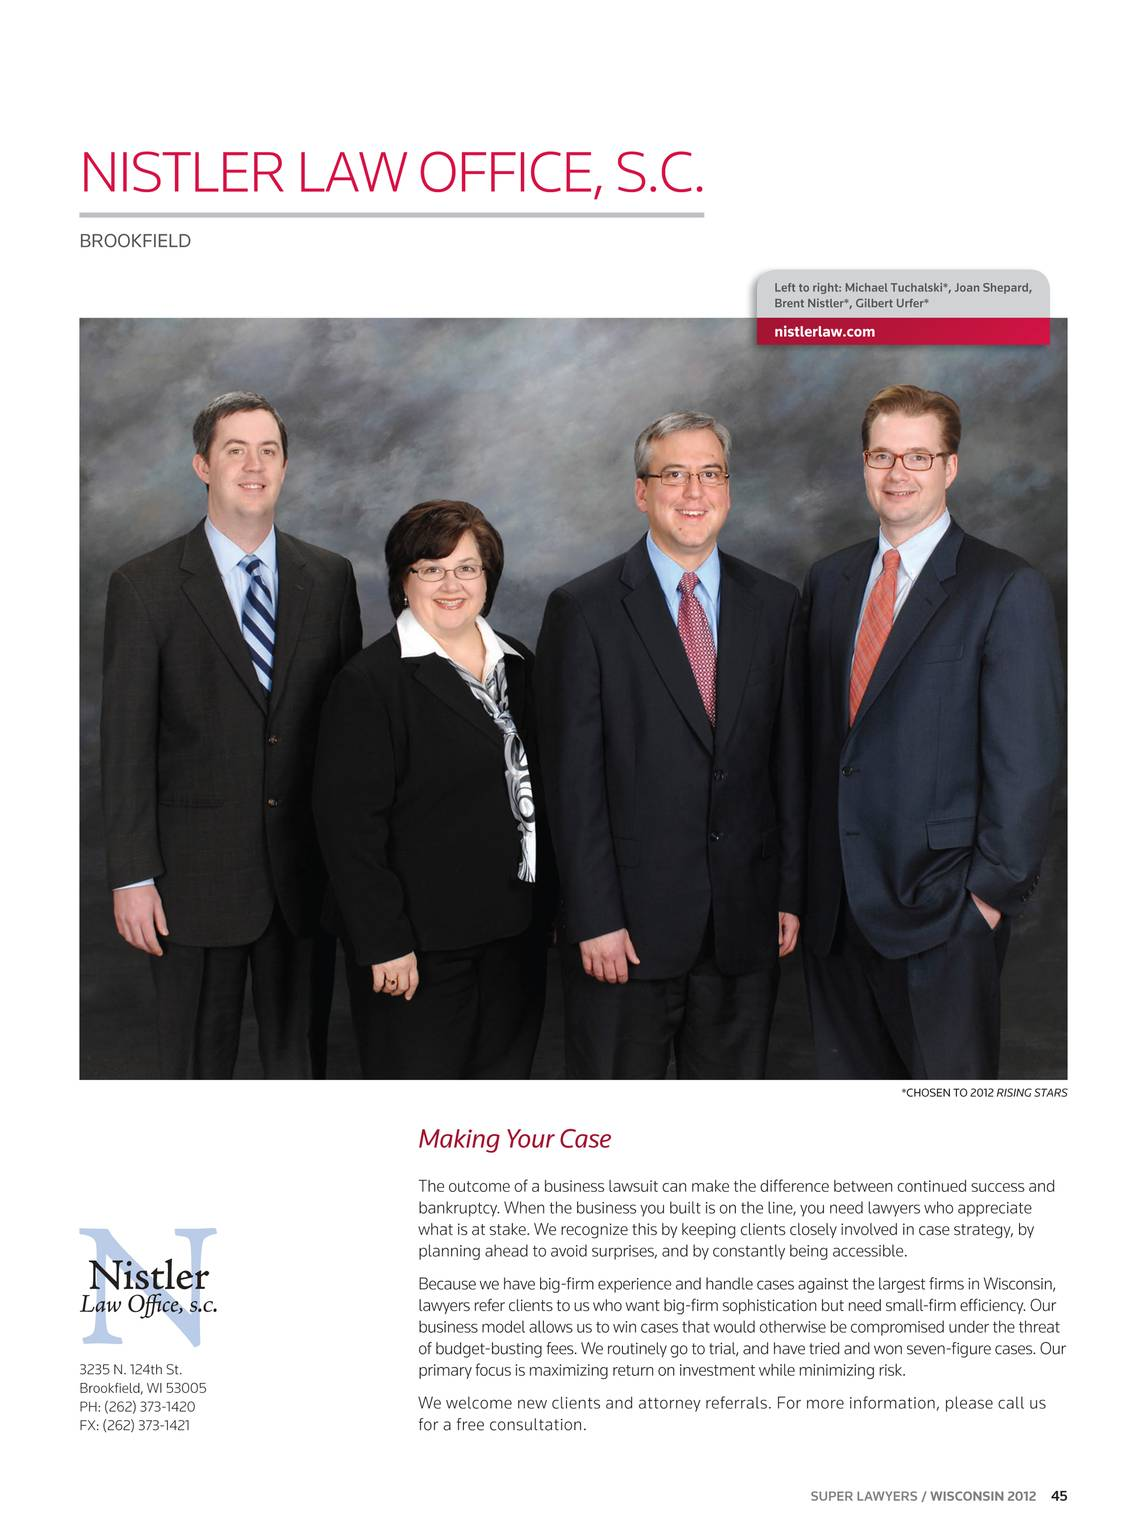 Super Lawyers - Wisconsin 2012 - page 44